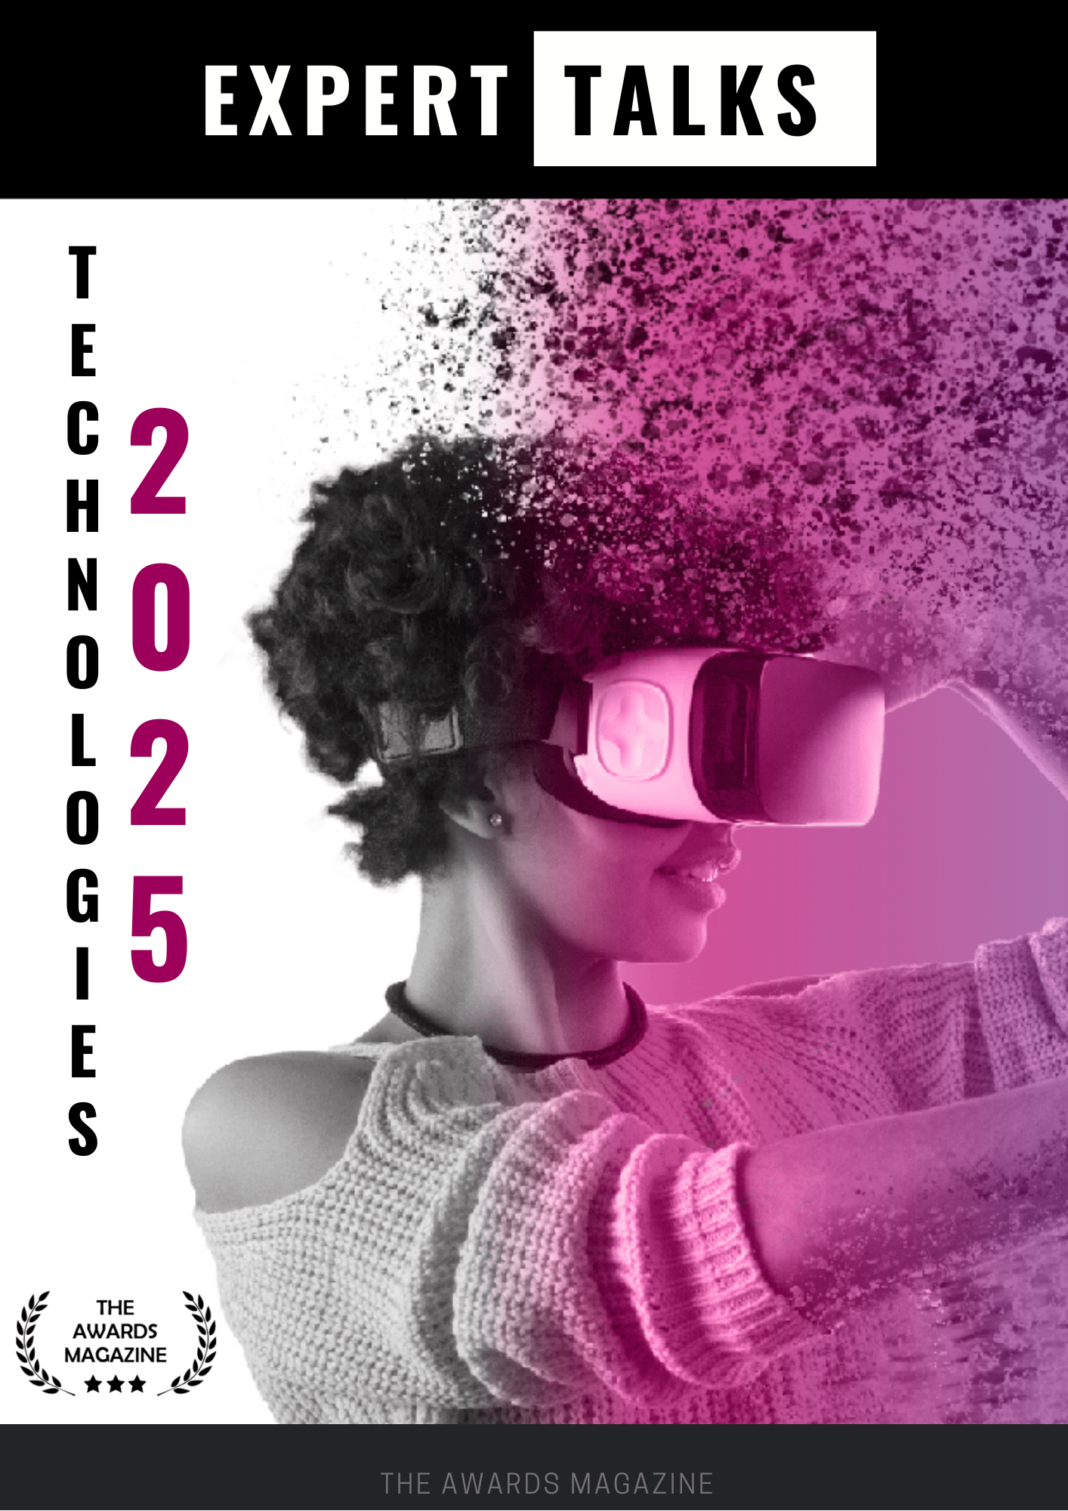 Technologies that will play a major role in 2025